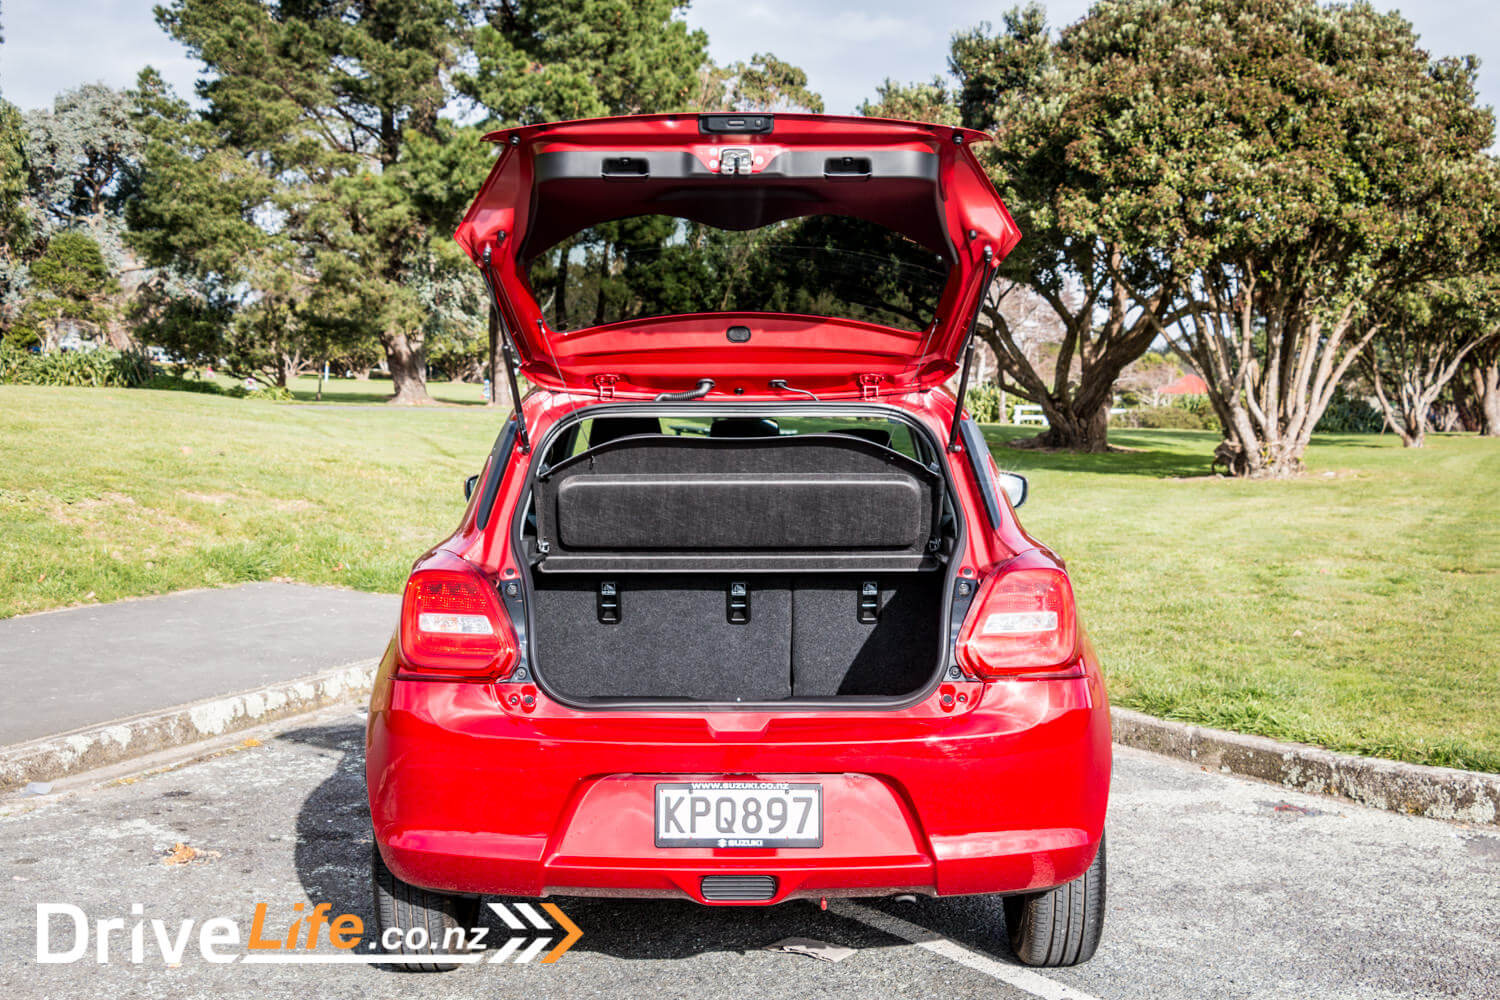 2017 Suzuki Swift Rs Car Review By Name Drivelife Motor Blower Honda All New Jazz Ori A Rear Foglight Isnt Required In Zealand So Theres Black Plastic Blanking Plate Instead Little Things But They Add Up To Take The Shine Off